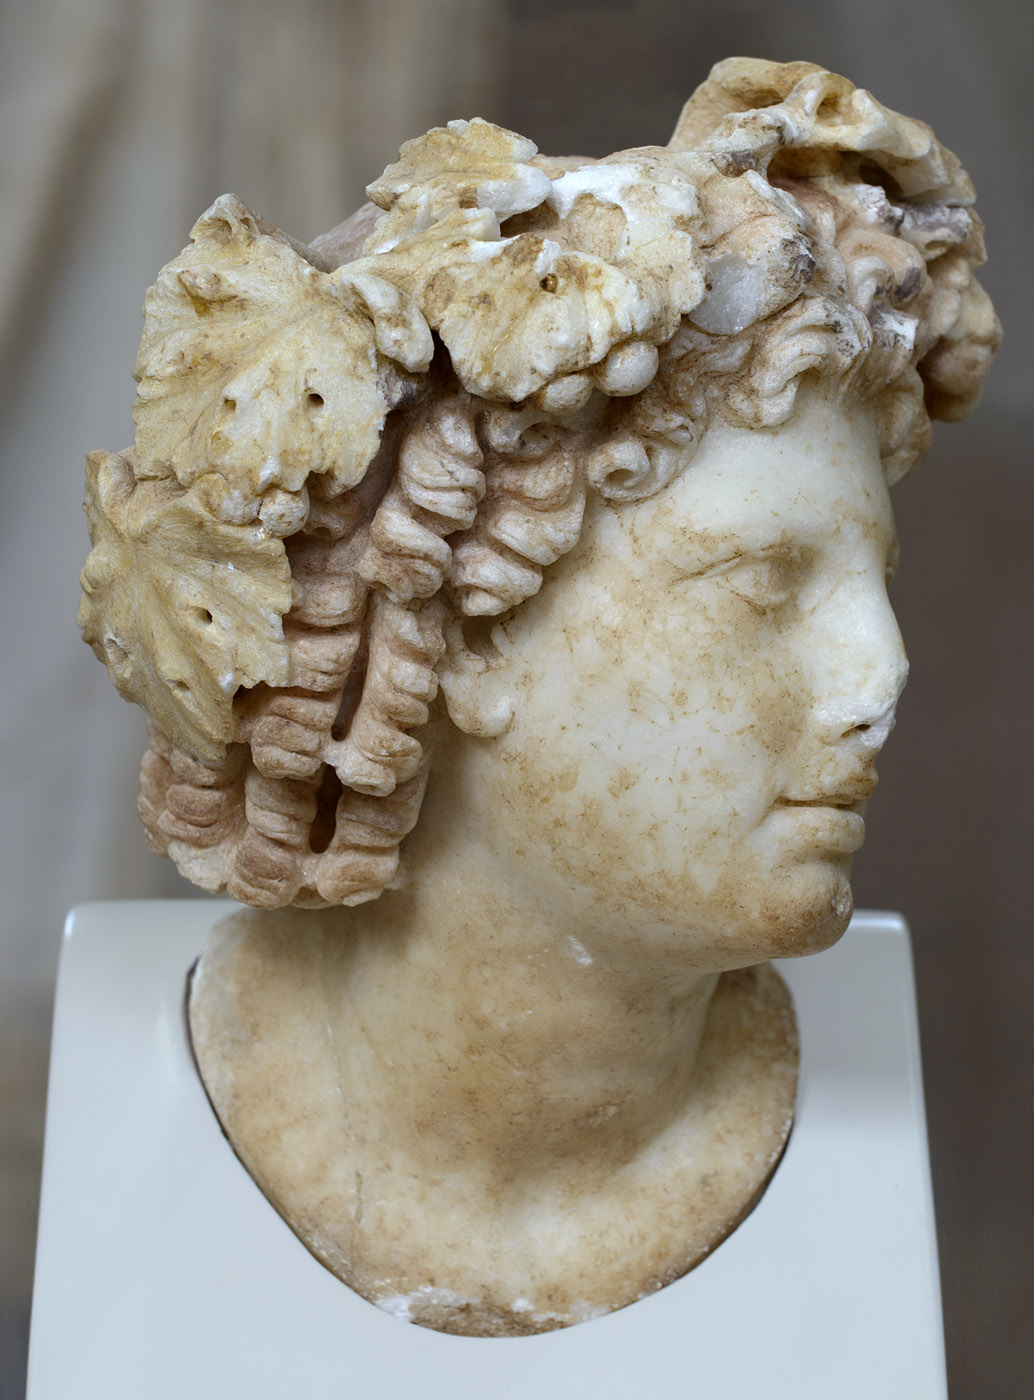 Head of Dionysos. Marble. 2nd cent. CE. Inv. No. S 1669. Corinth, Archaeological Museum of Ancient Corinth